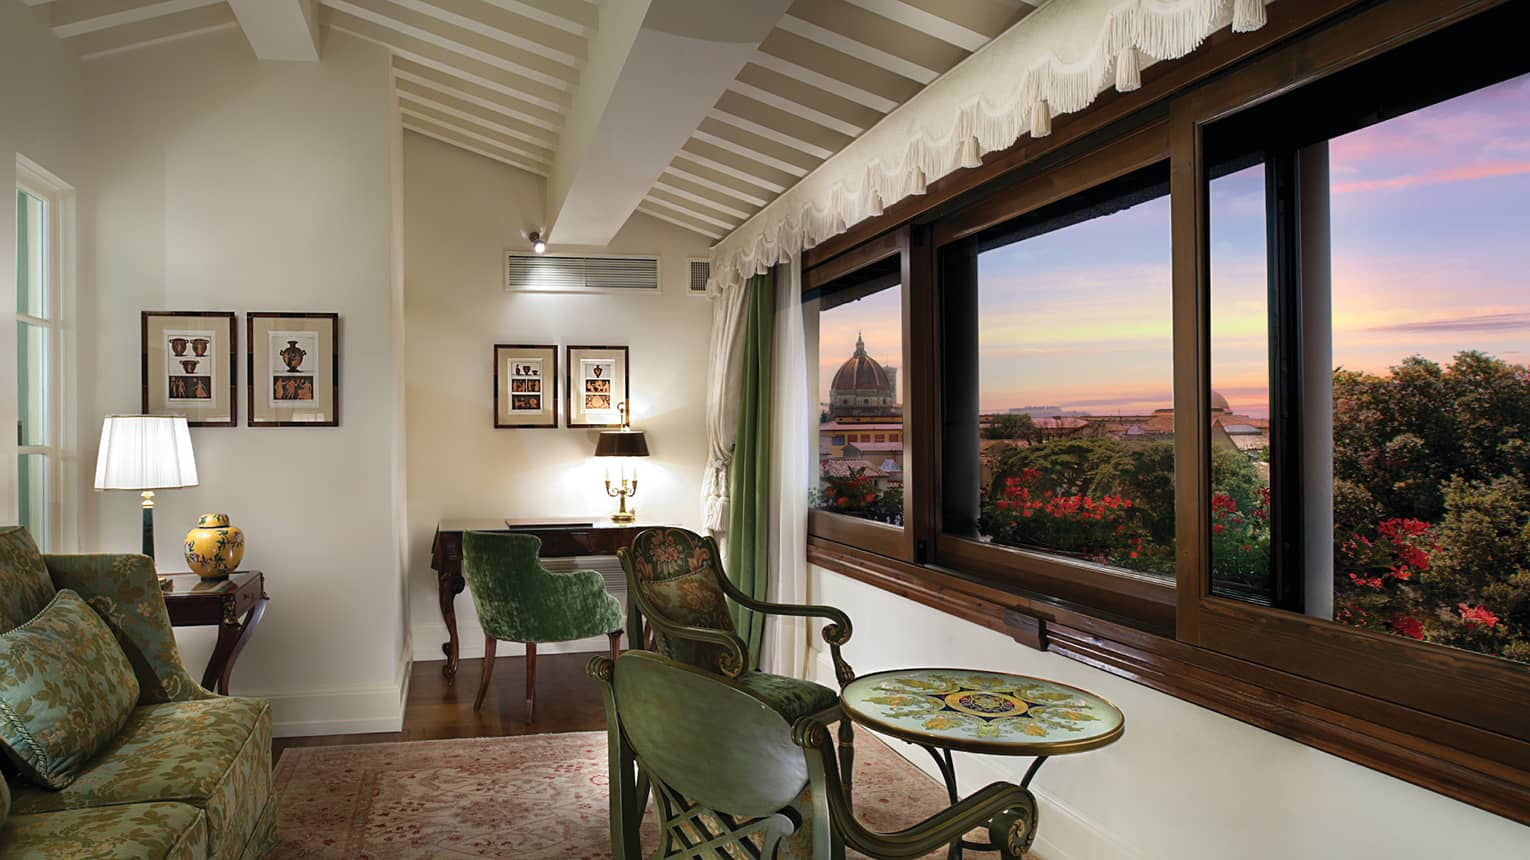 Duomo View Executive Suite green sofas, chairs and table by large picture window overlooking Florence, sunset